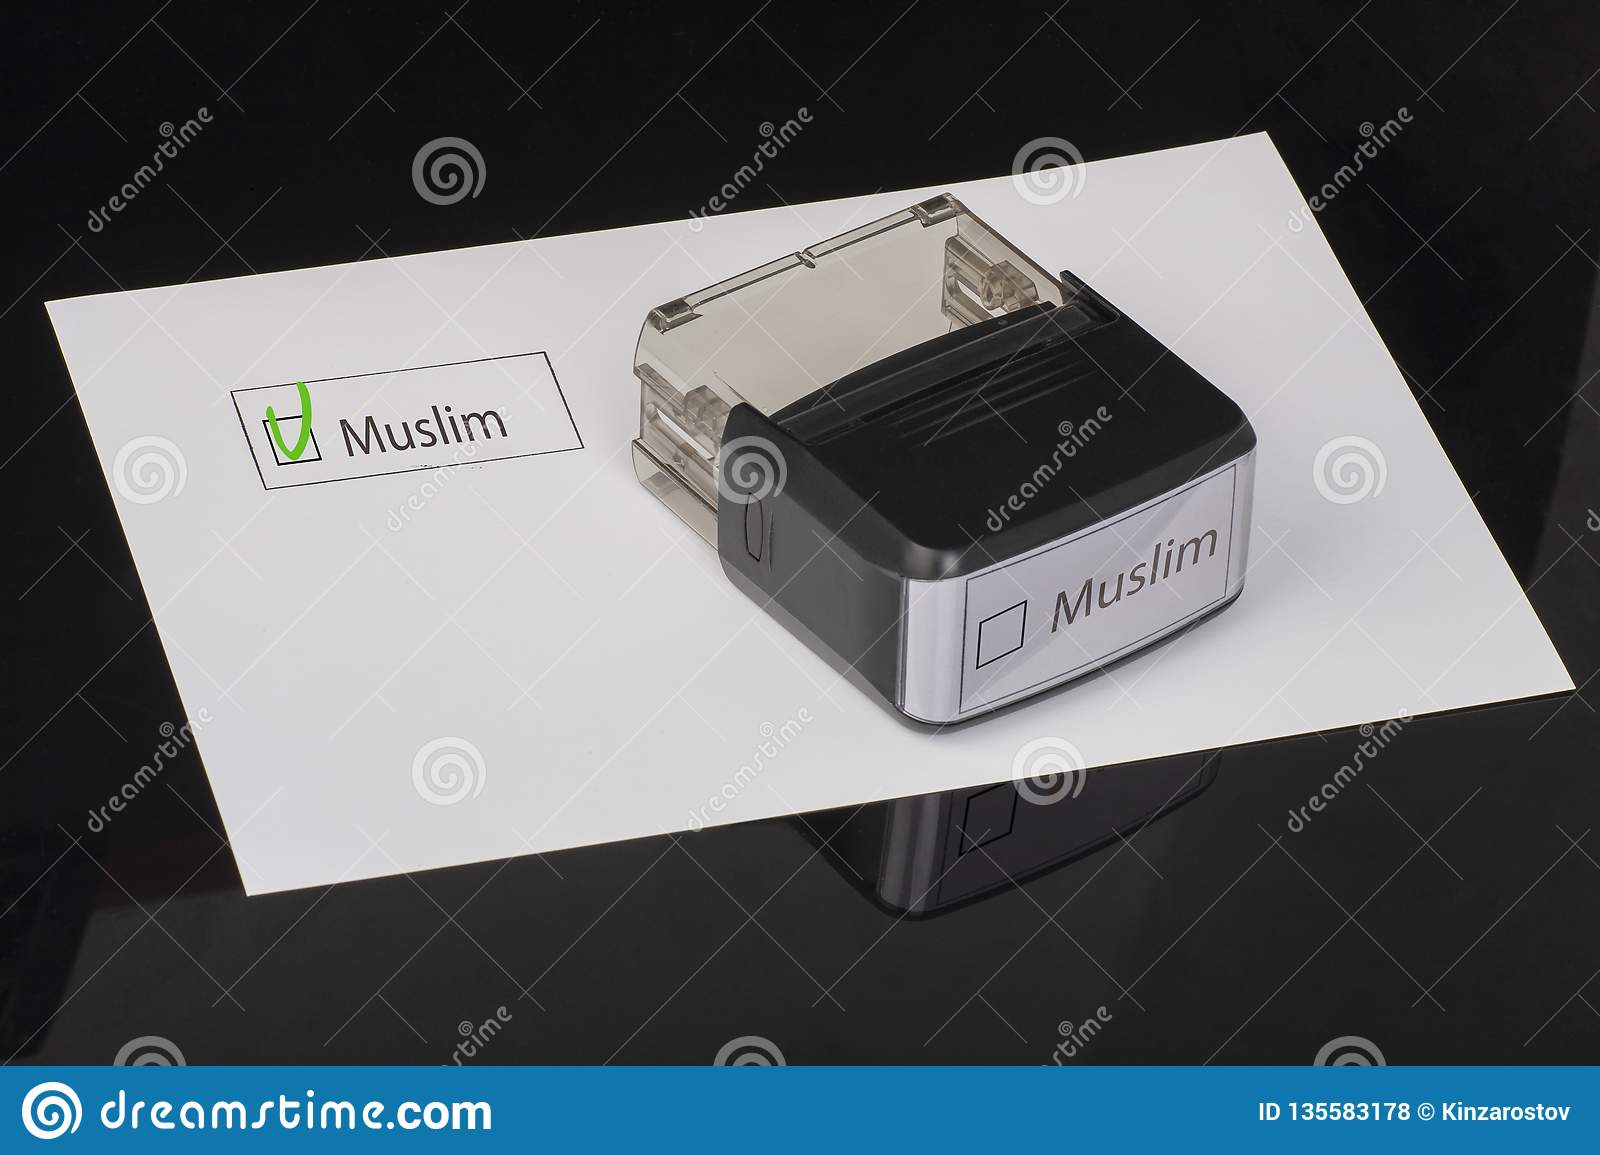 Muslim - checkbox with a cross on white paper with handle Rubber Stamper. Checklist concept